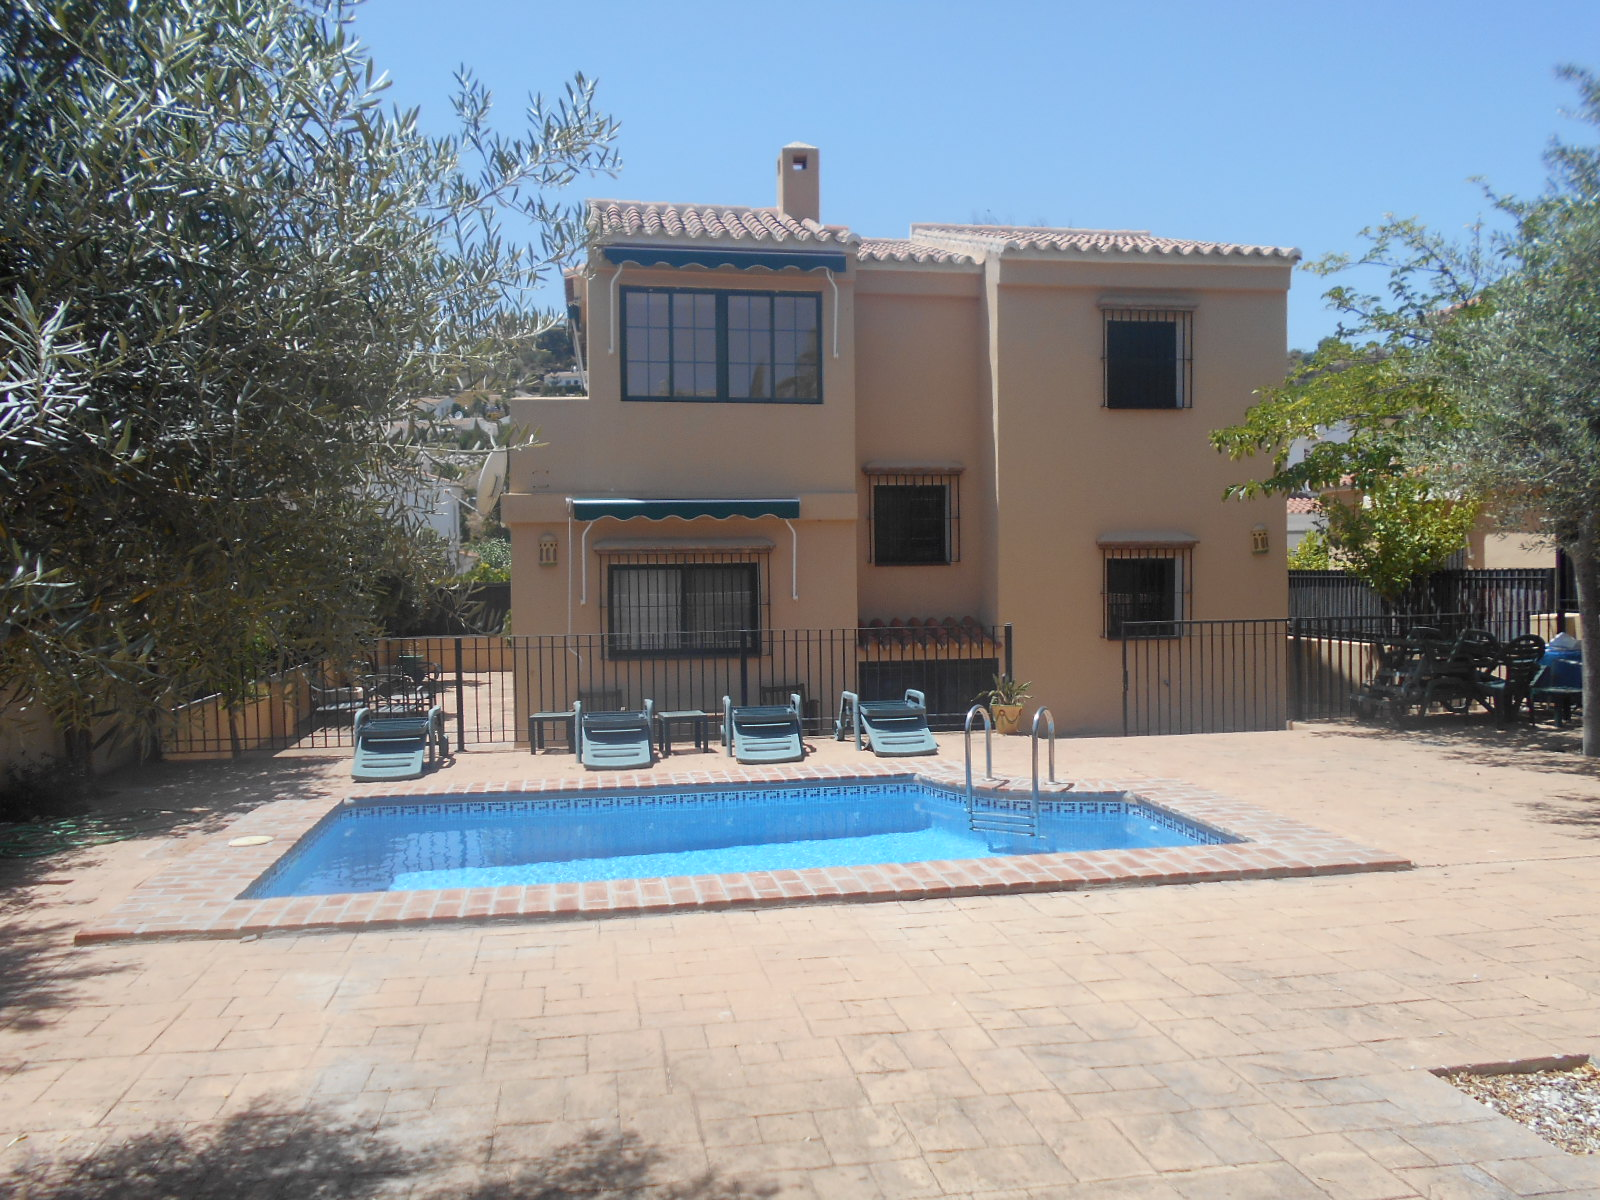 4 BEDROOM VILLA IN PUENTE DON MANUEL From £500/WEEK UP TO 8 PEOPLE